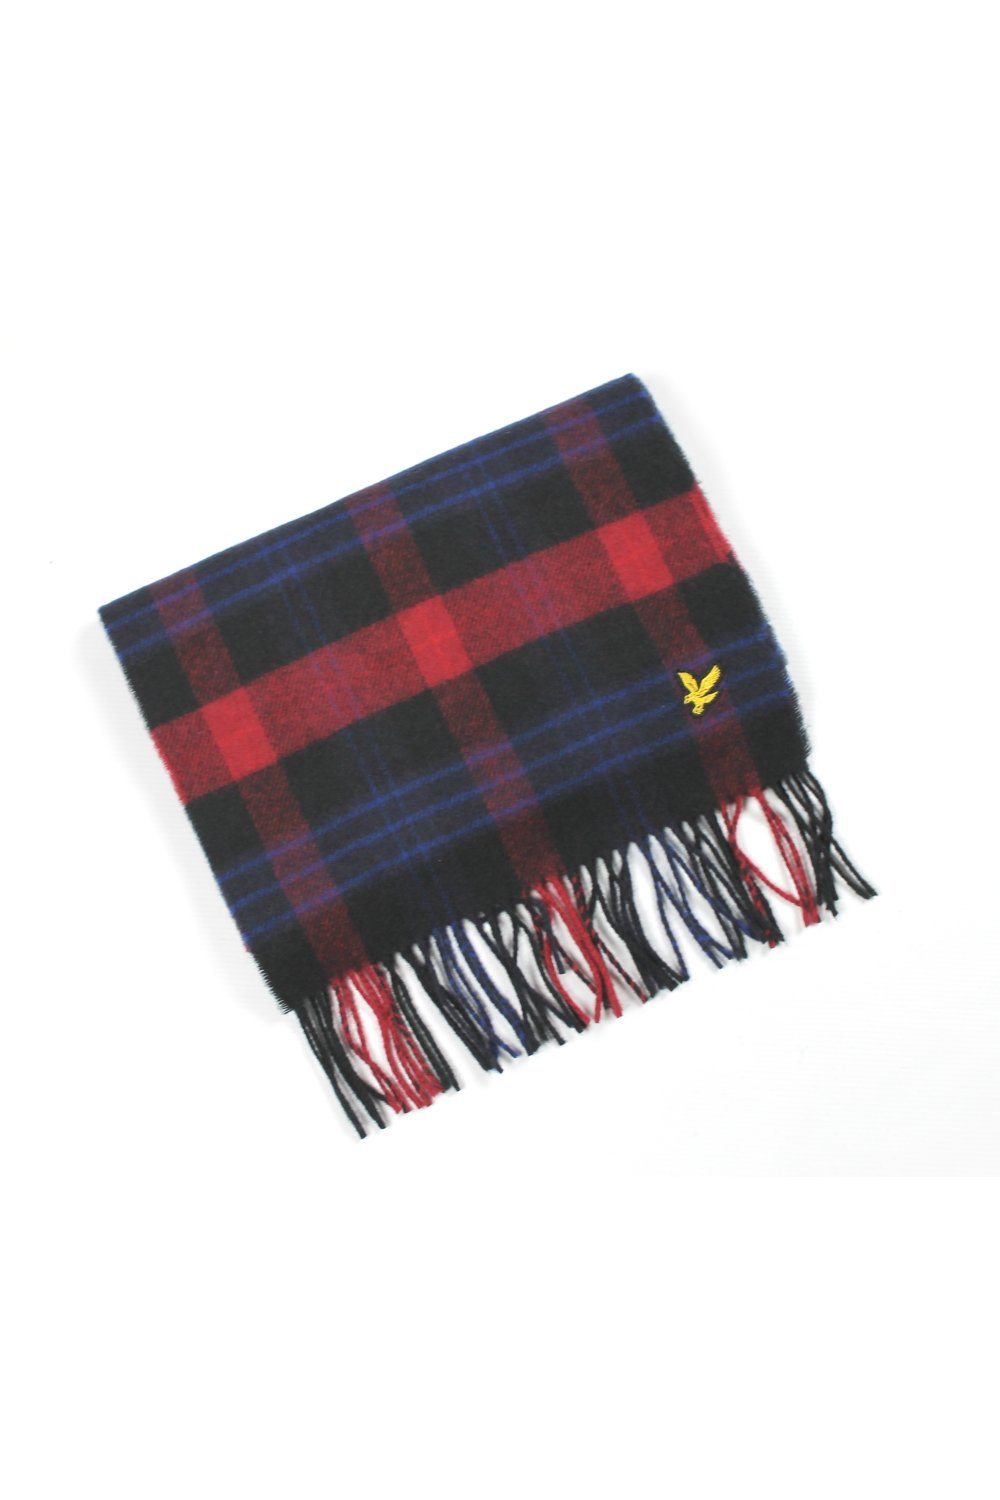 super billigt skridsko skor klassisk stil Lyle & Scott Tartan Scarf (True Black/Red) - Accessories from ...